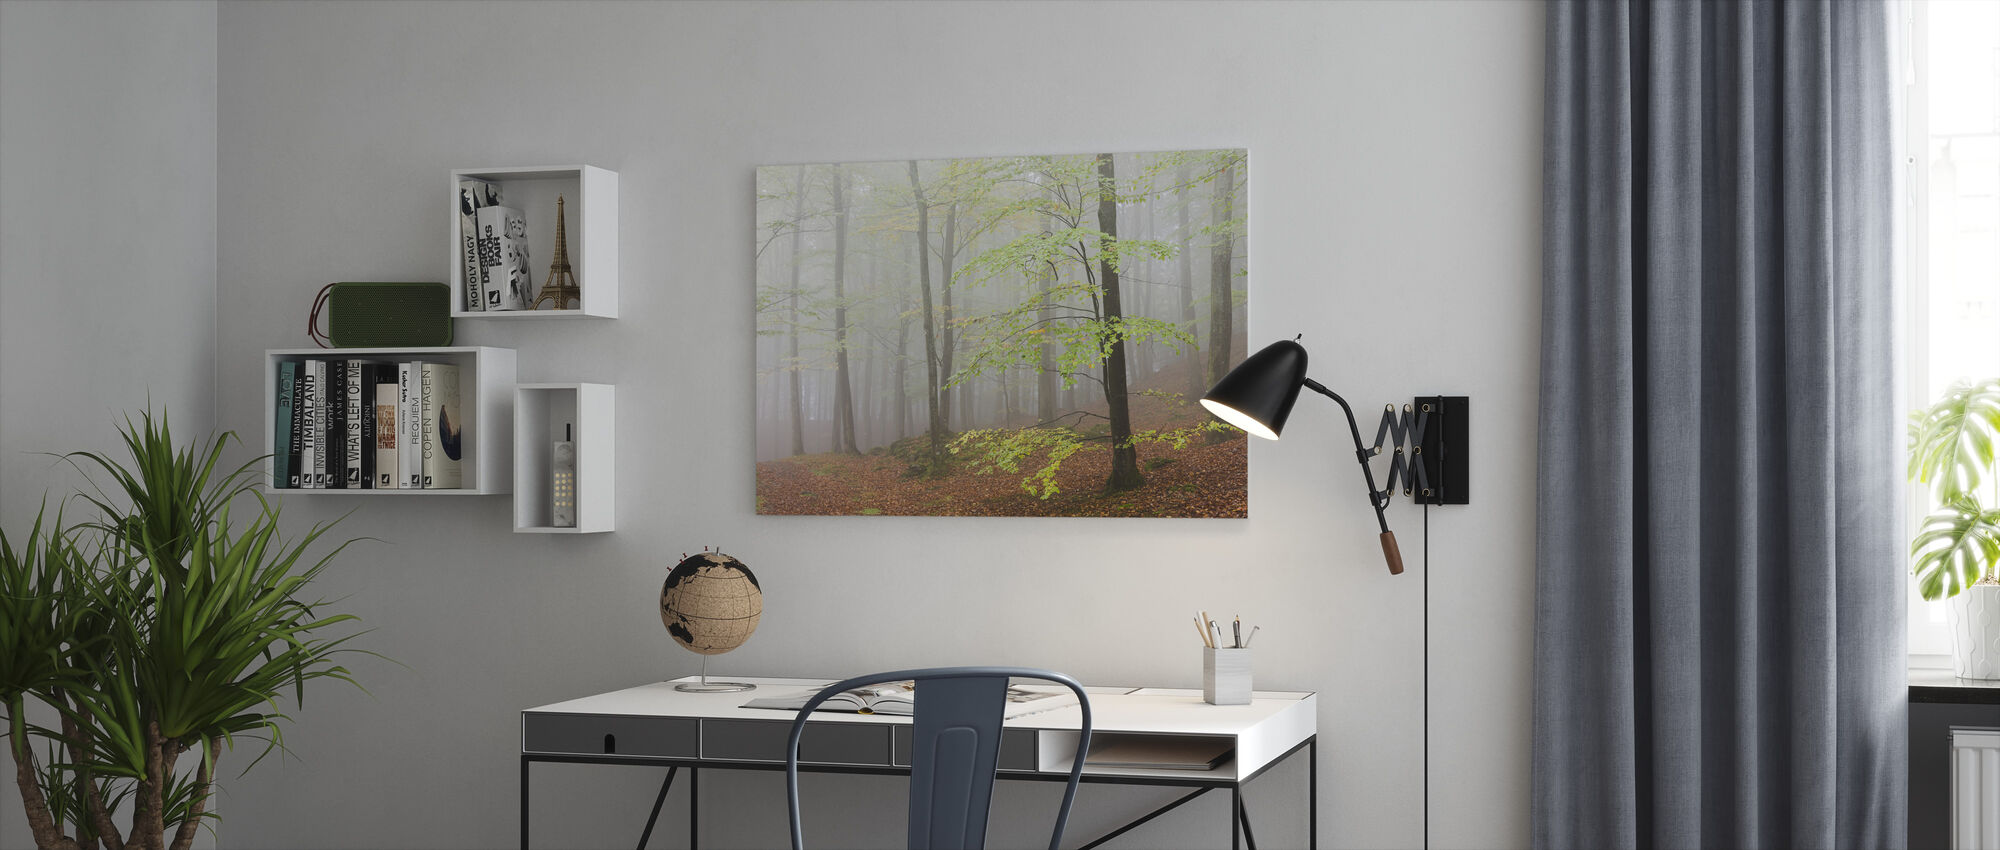 Clowing Hallar Beech Forest, Sweden I, Europe - Canvas print - Office